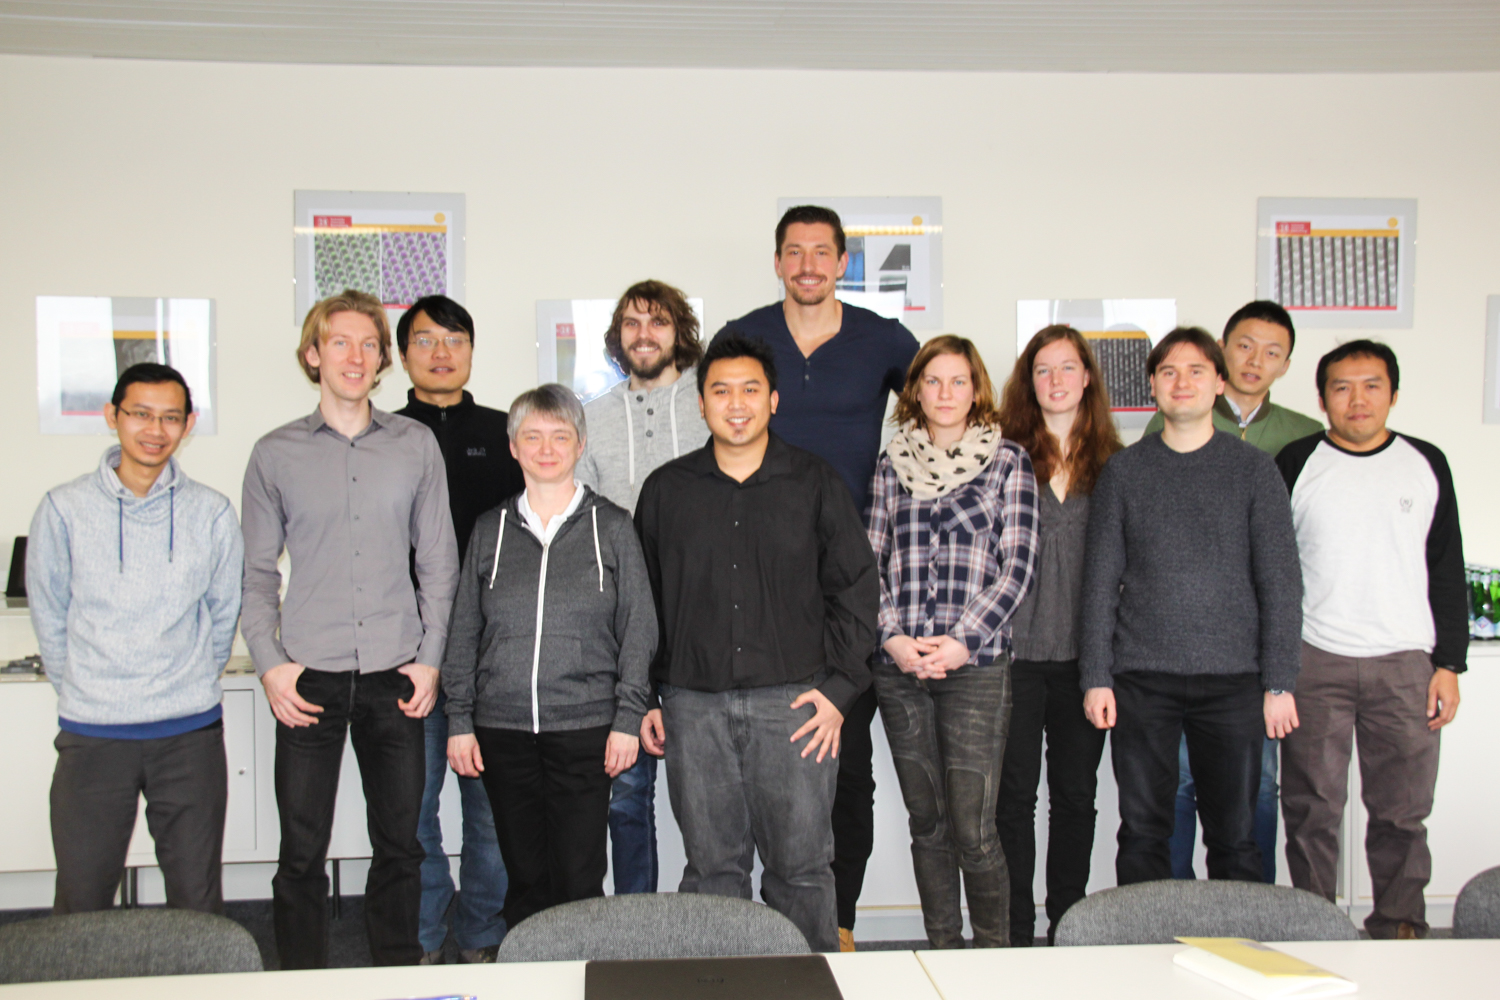 Left to right: Nursidik Yulianto, Nicolai Markiewicz, Feng Yu, Angelika Schmidt, Klaas Strempel, Dr. Hutomo Suryo Wasisto, Tony Granz, Juliane Breitfelder, Heidi Boht, Gregor Scholz, Wenze Wu, Iqbal Syamsu. Credit: Andrea Hoferichter: TU Braunschweig